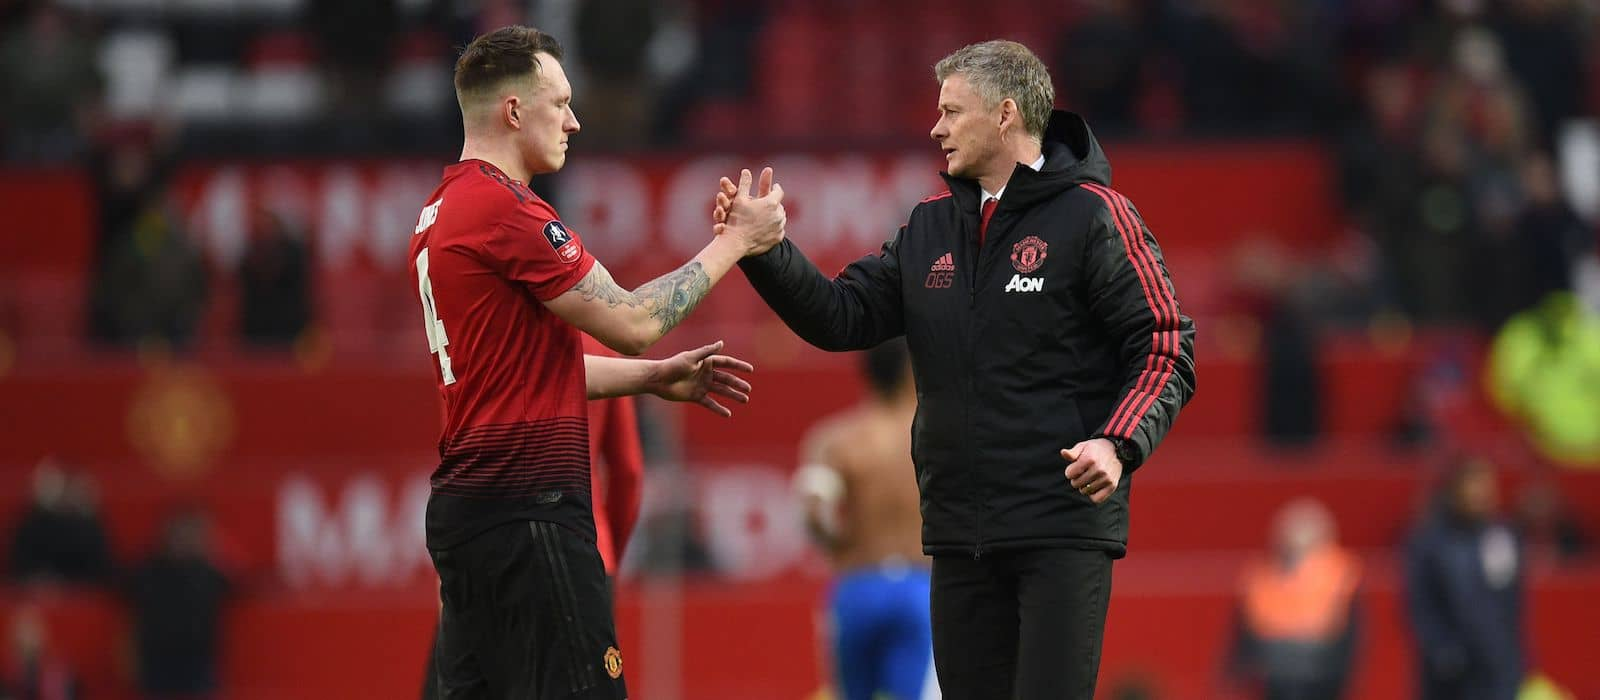 Ole Gunnar Solskjaer: Manchester United need to improve ahead of Tottenham clash